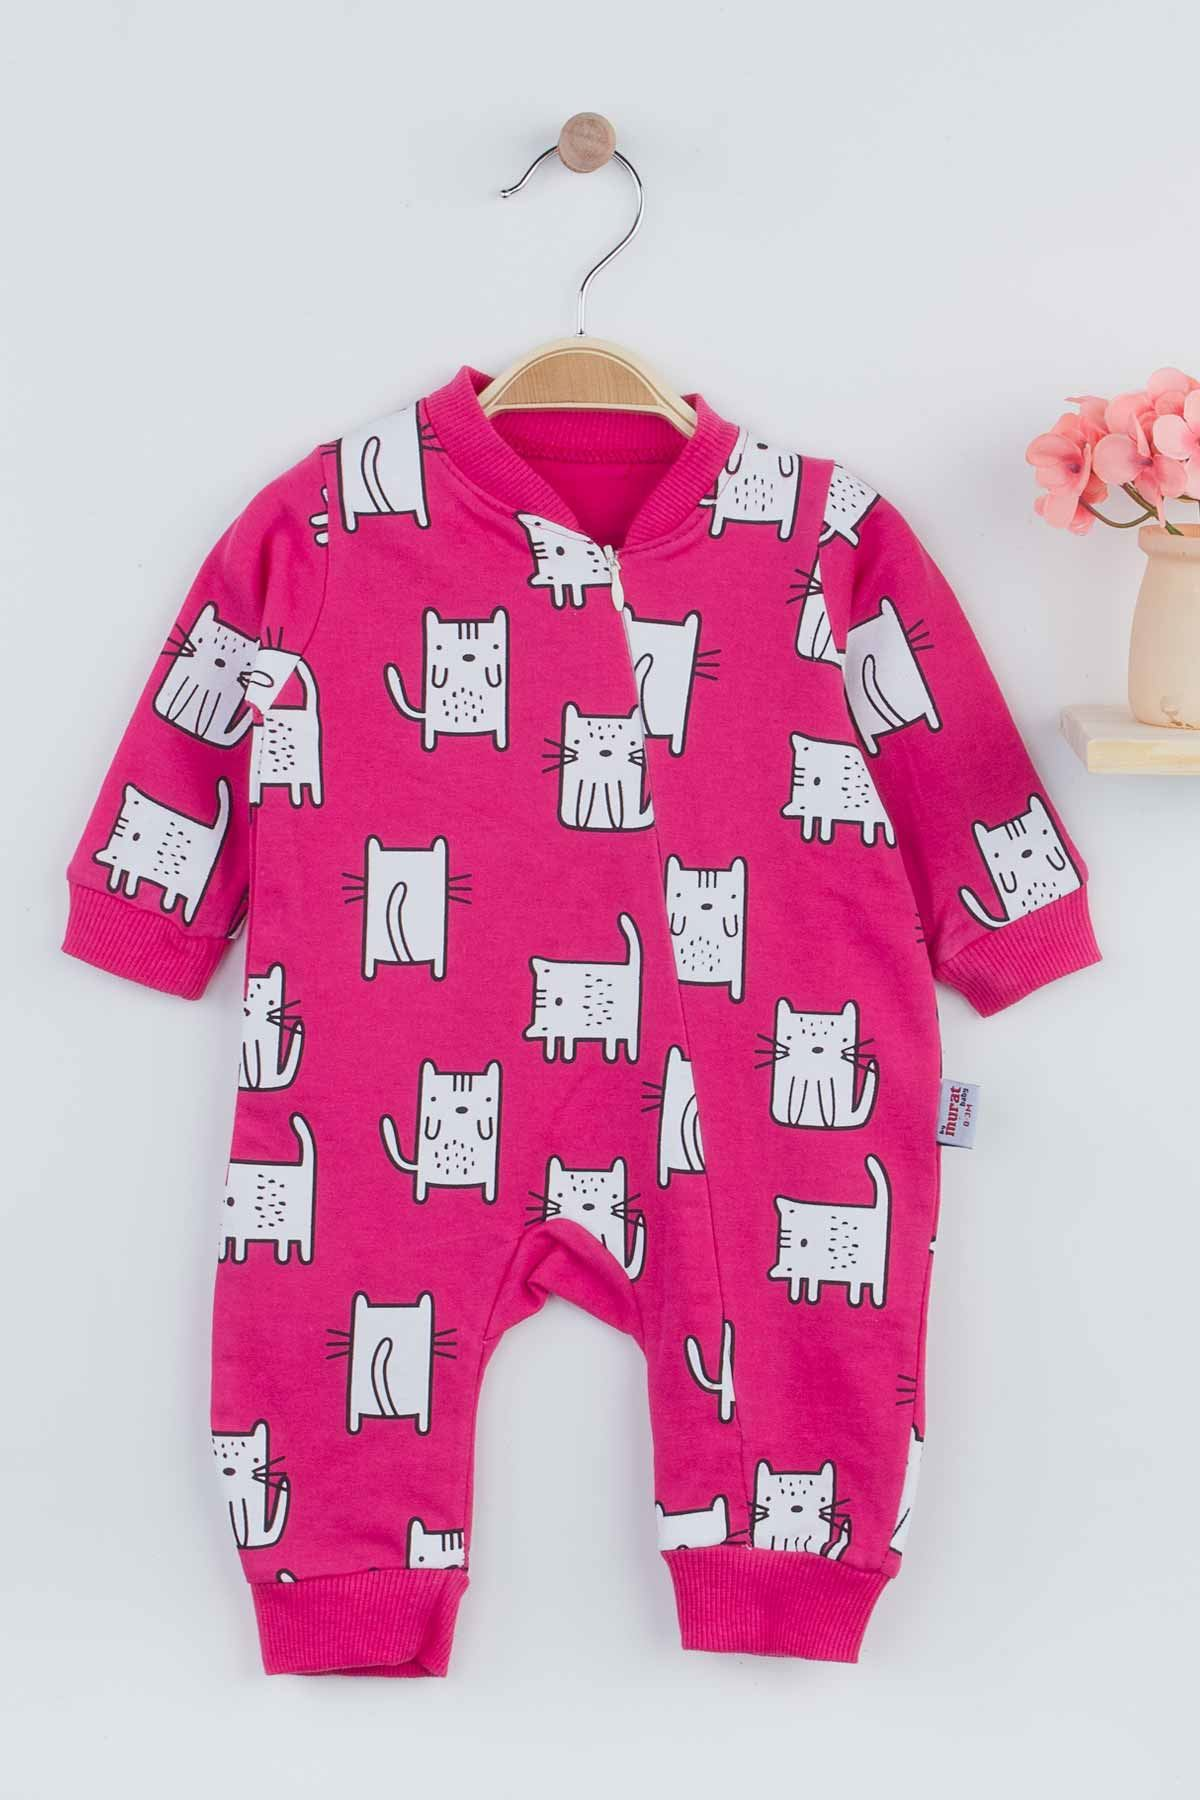 Fuchsia Cat Baby Girl Rompers Babies Clothes Set Outfit Cotton Comfortable Underwear 2021 New Season Girls Salopet Models